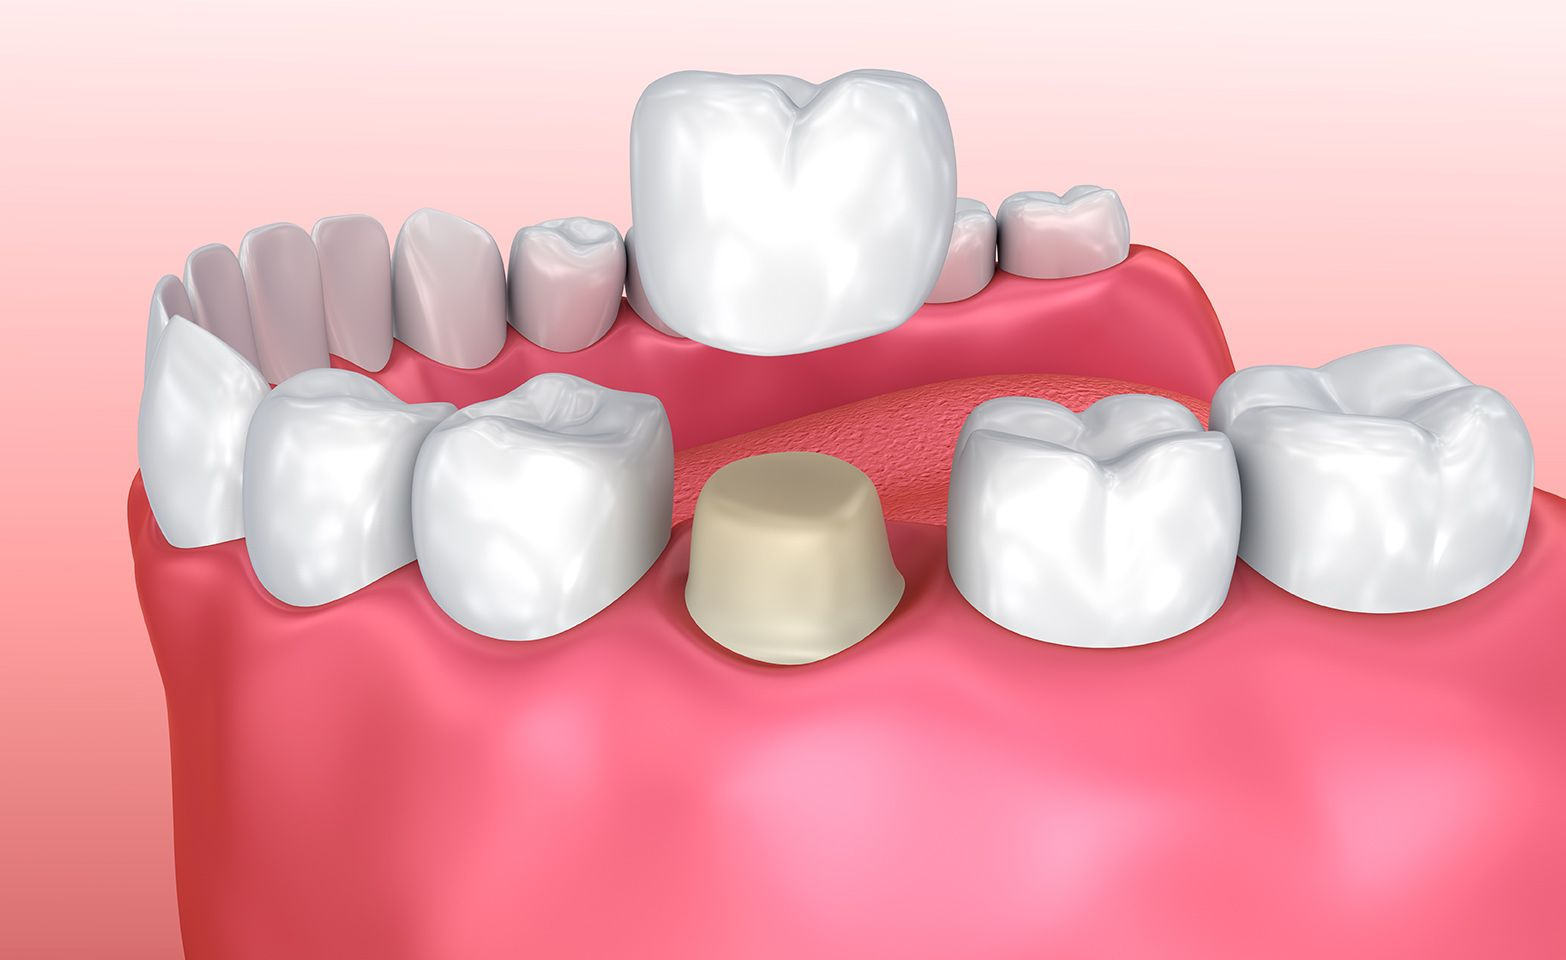 Illustration or prepared tooth and dental crown